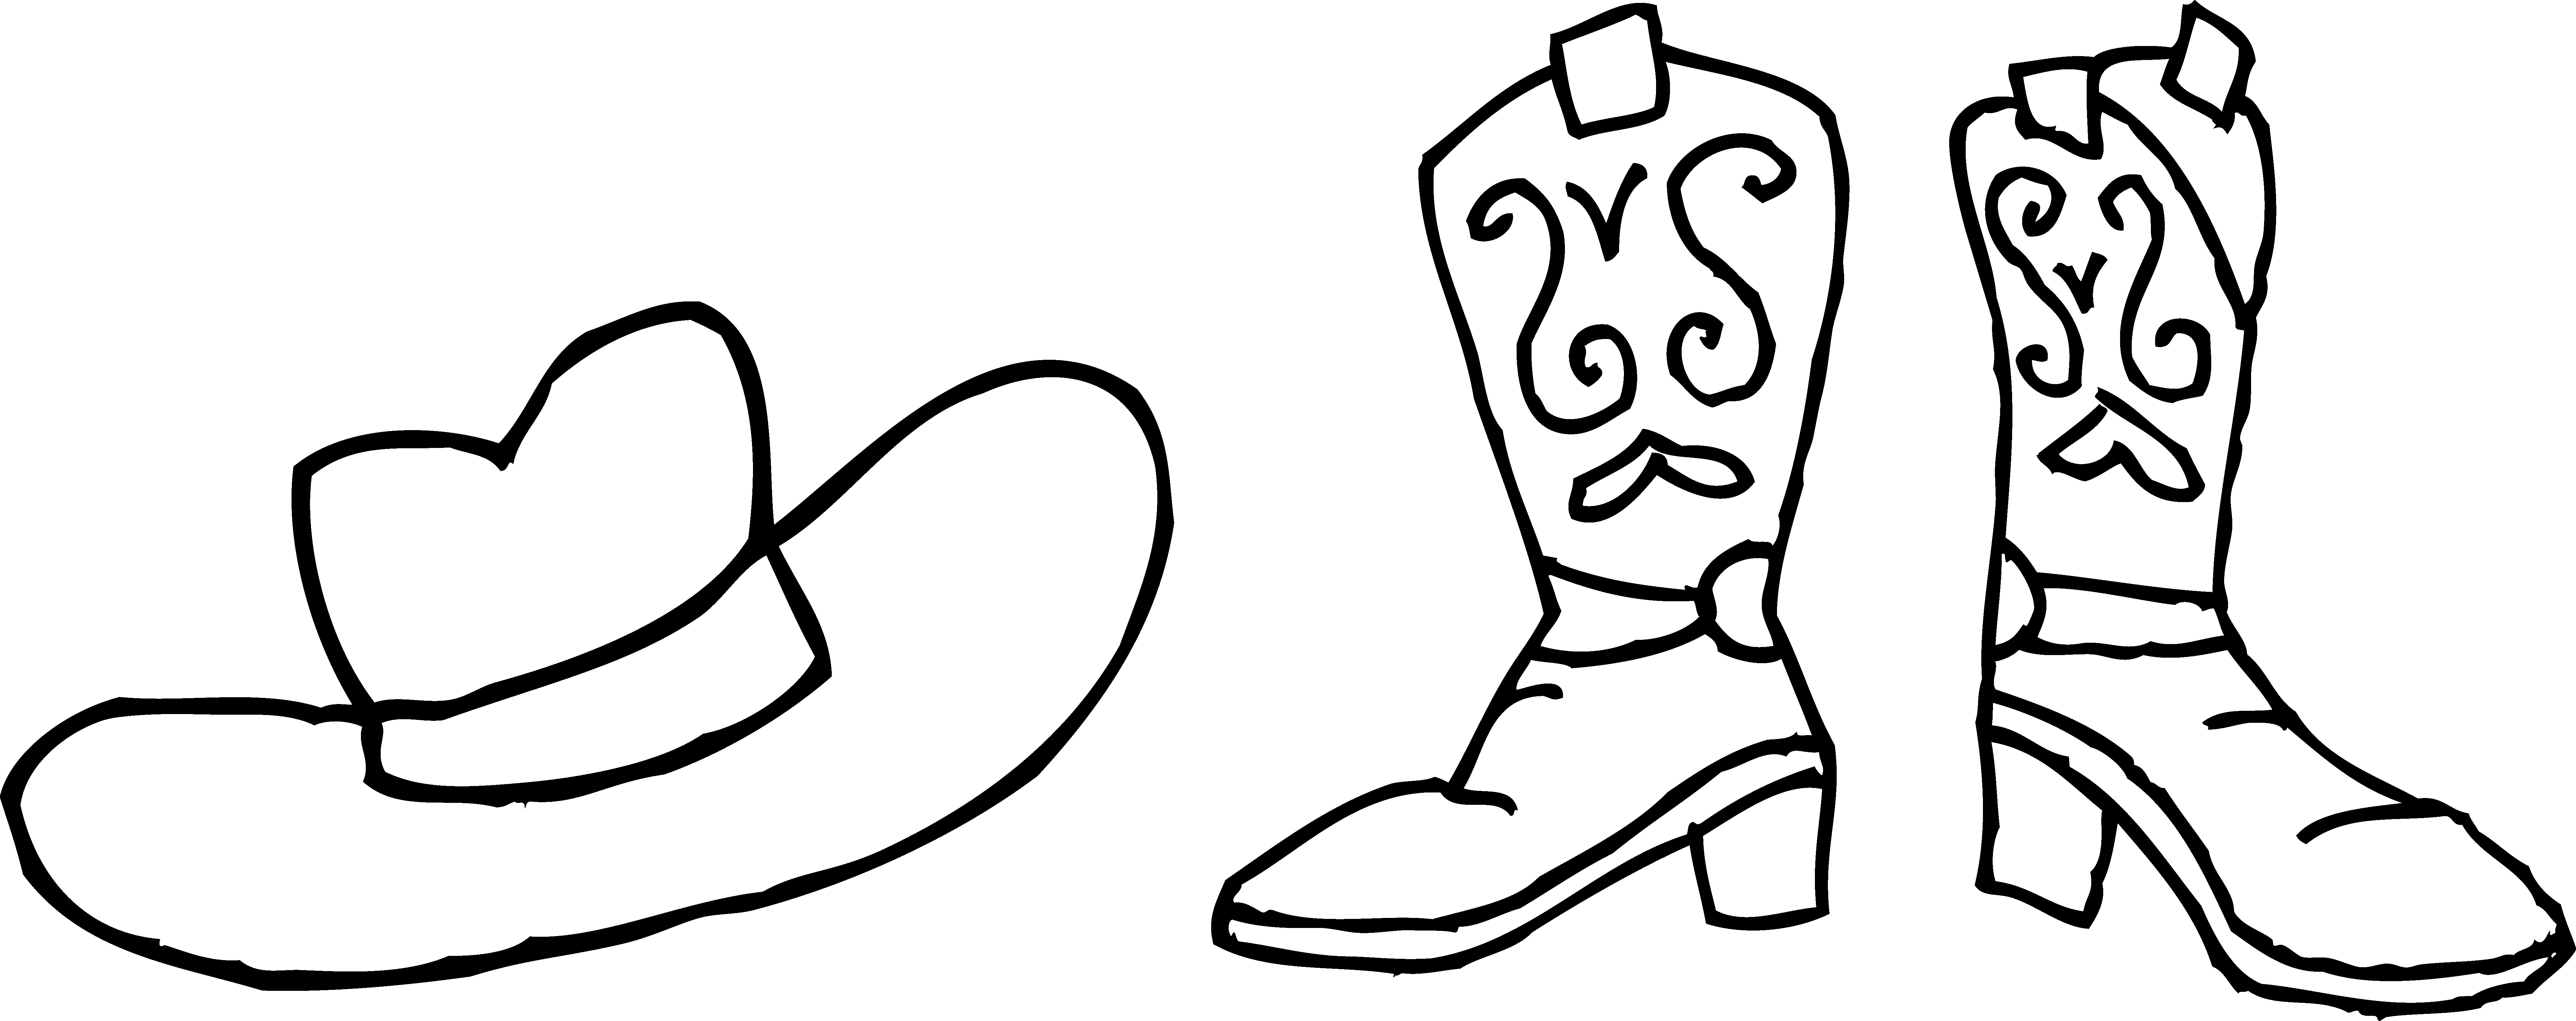 Cowboy Boots Clipart Black And White Clipart Panda